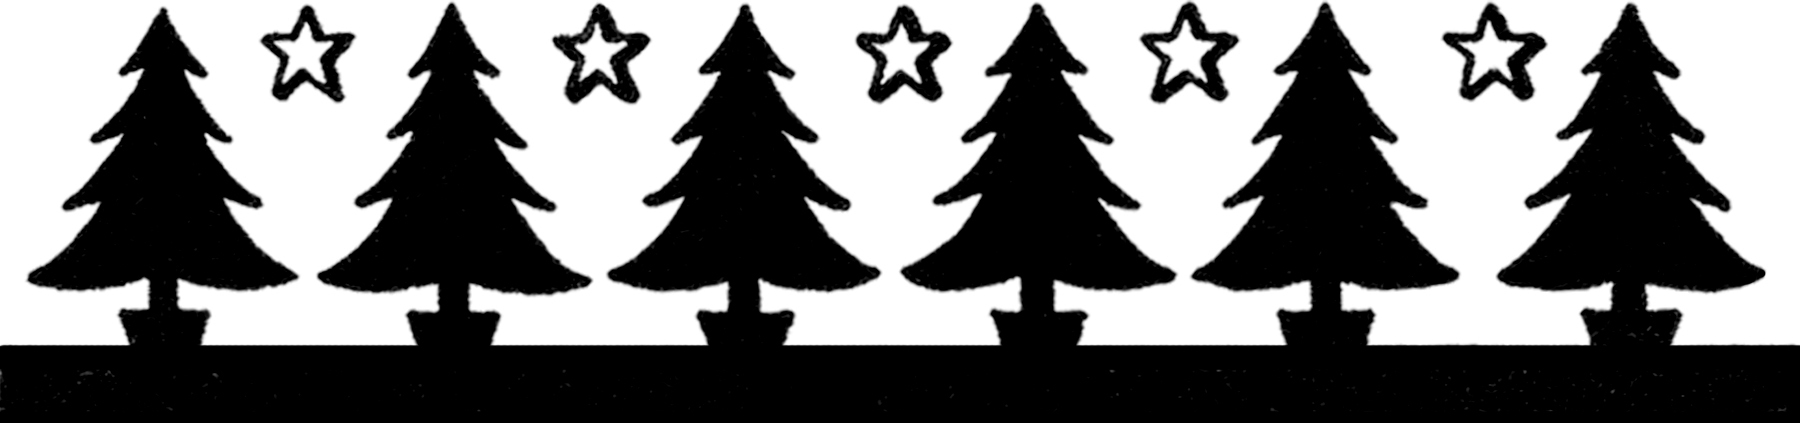 Christmas Tree Silhouette Border Image - Cute! - The ...